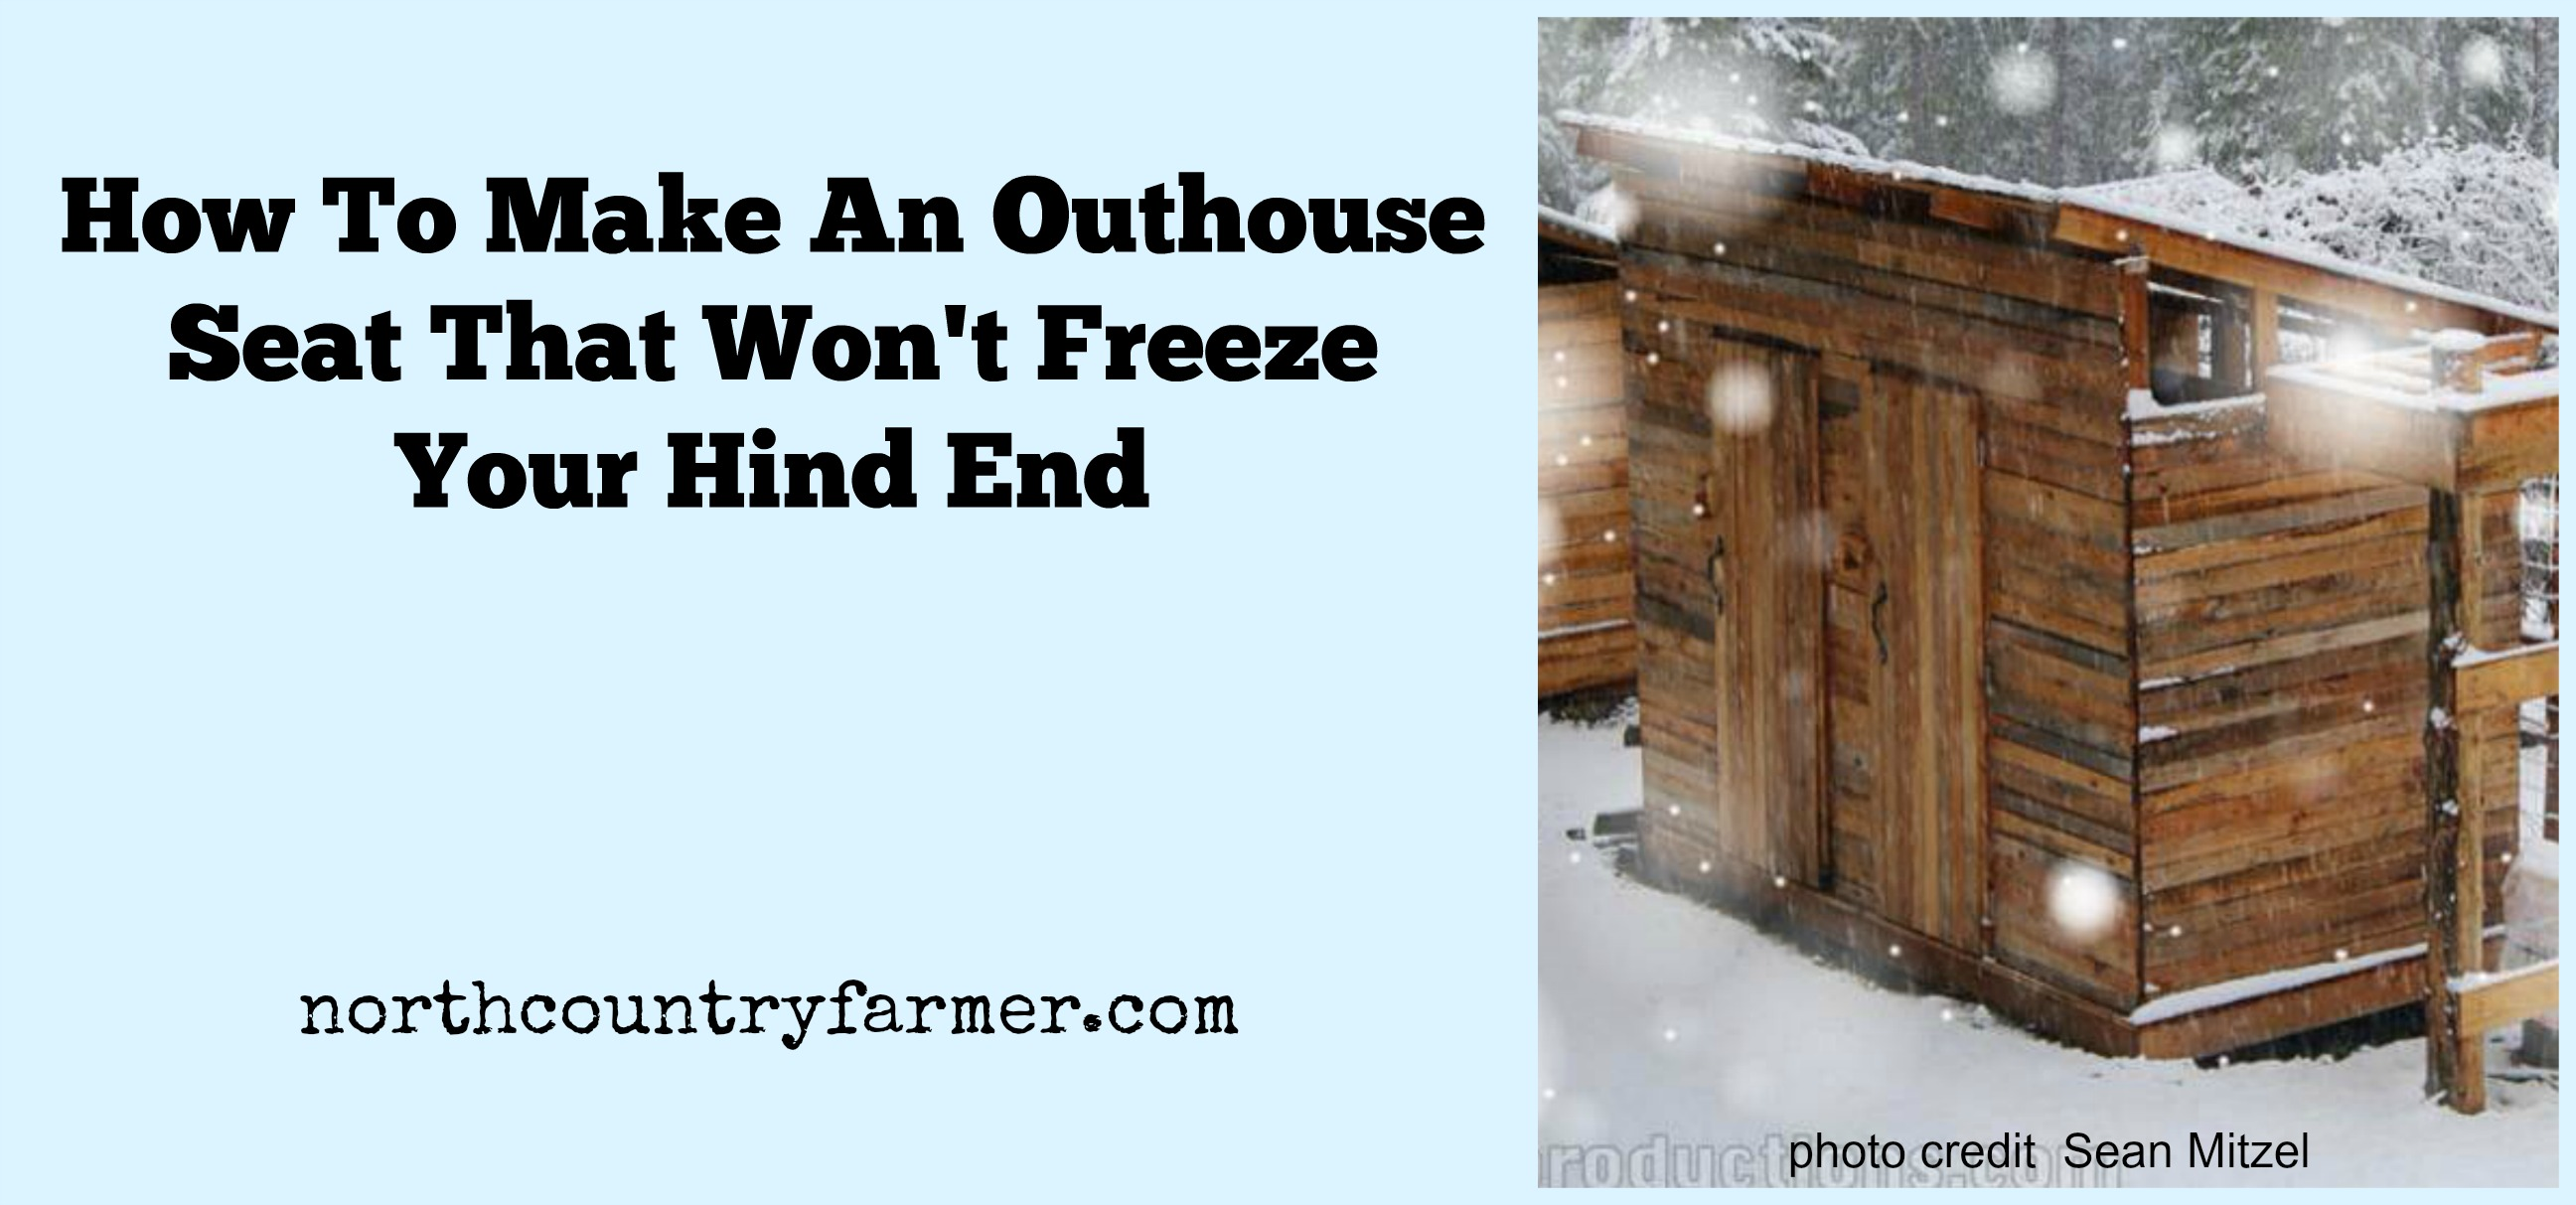 How To Make An Outhouse Seat That Won't Freeze Your Hind End